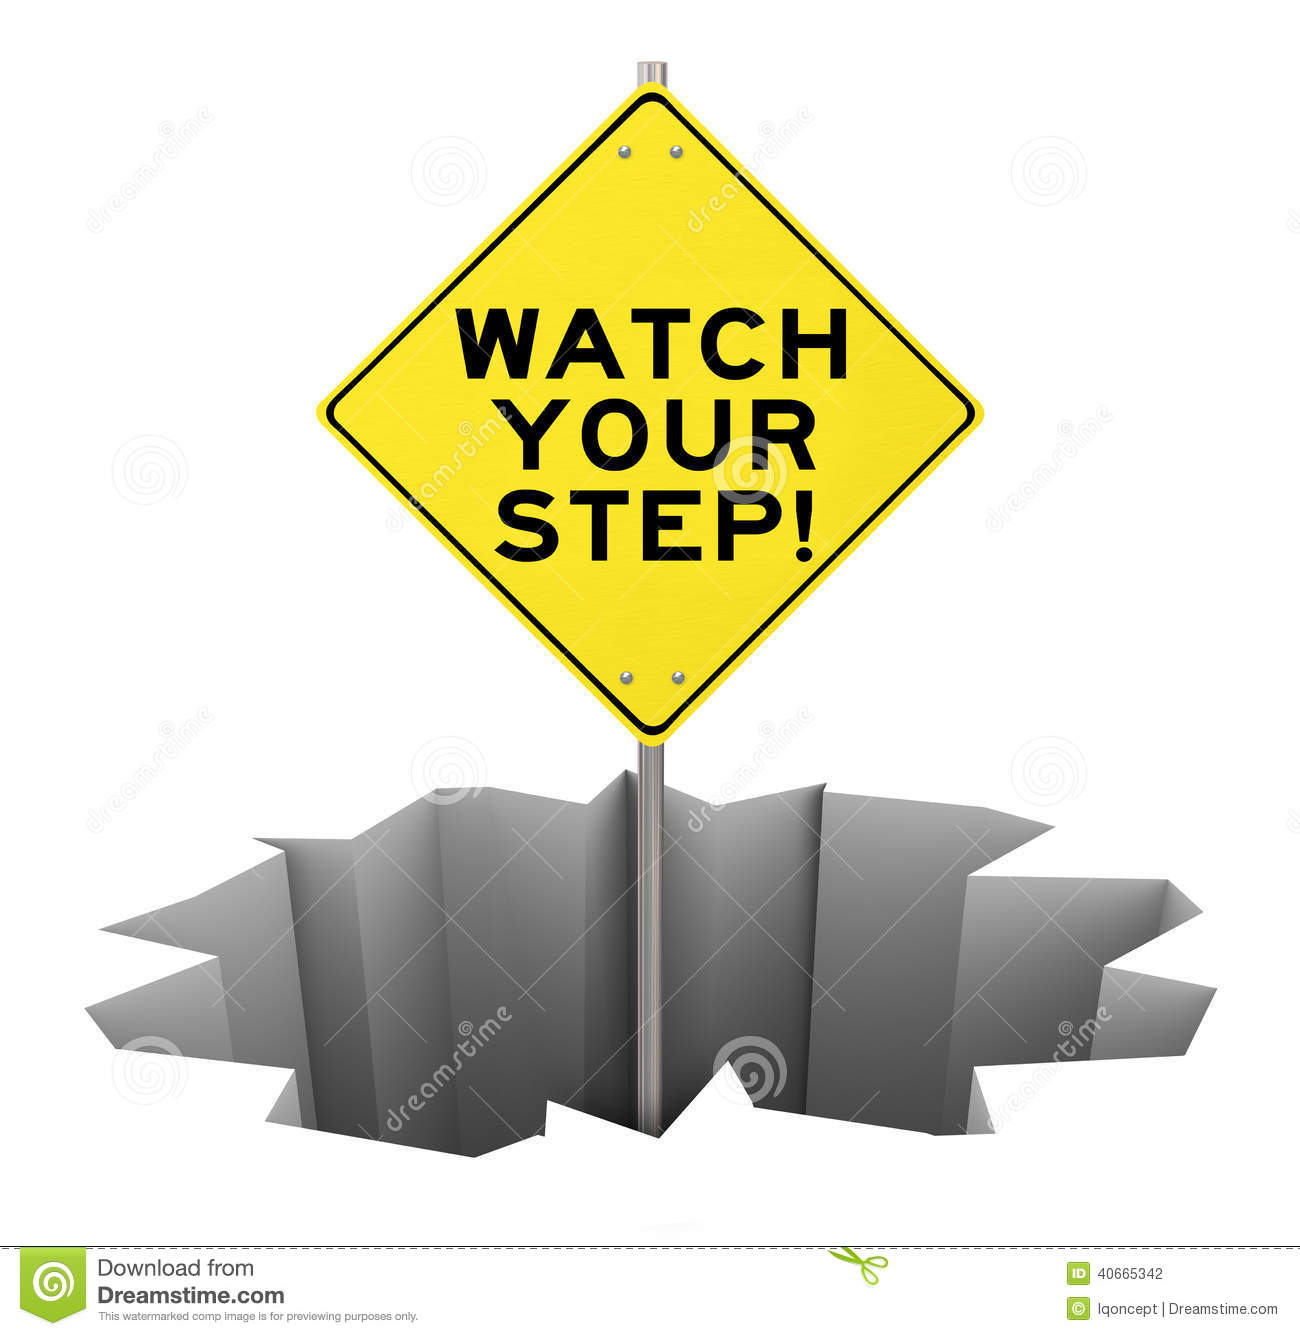 photo about Printable Watch Your Step Sign identify Check Your Move Caution Indication Gap Chance Likelihood Mitigation